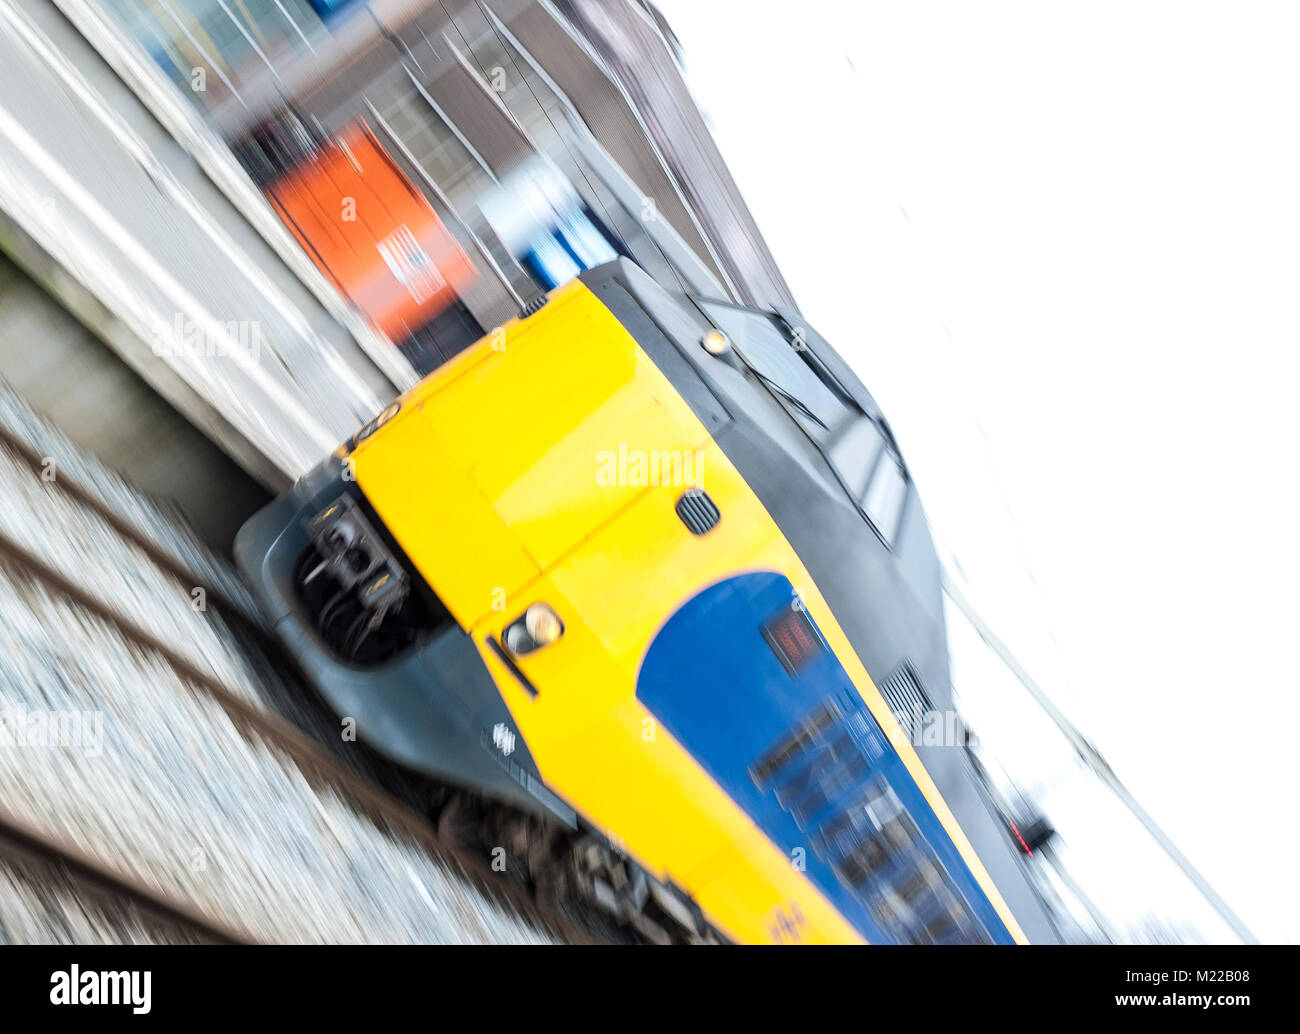 Panning image of a train entering the train station - Stock Image